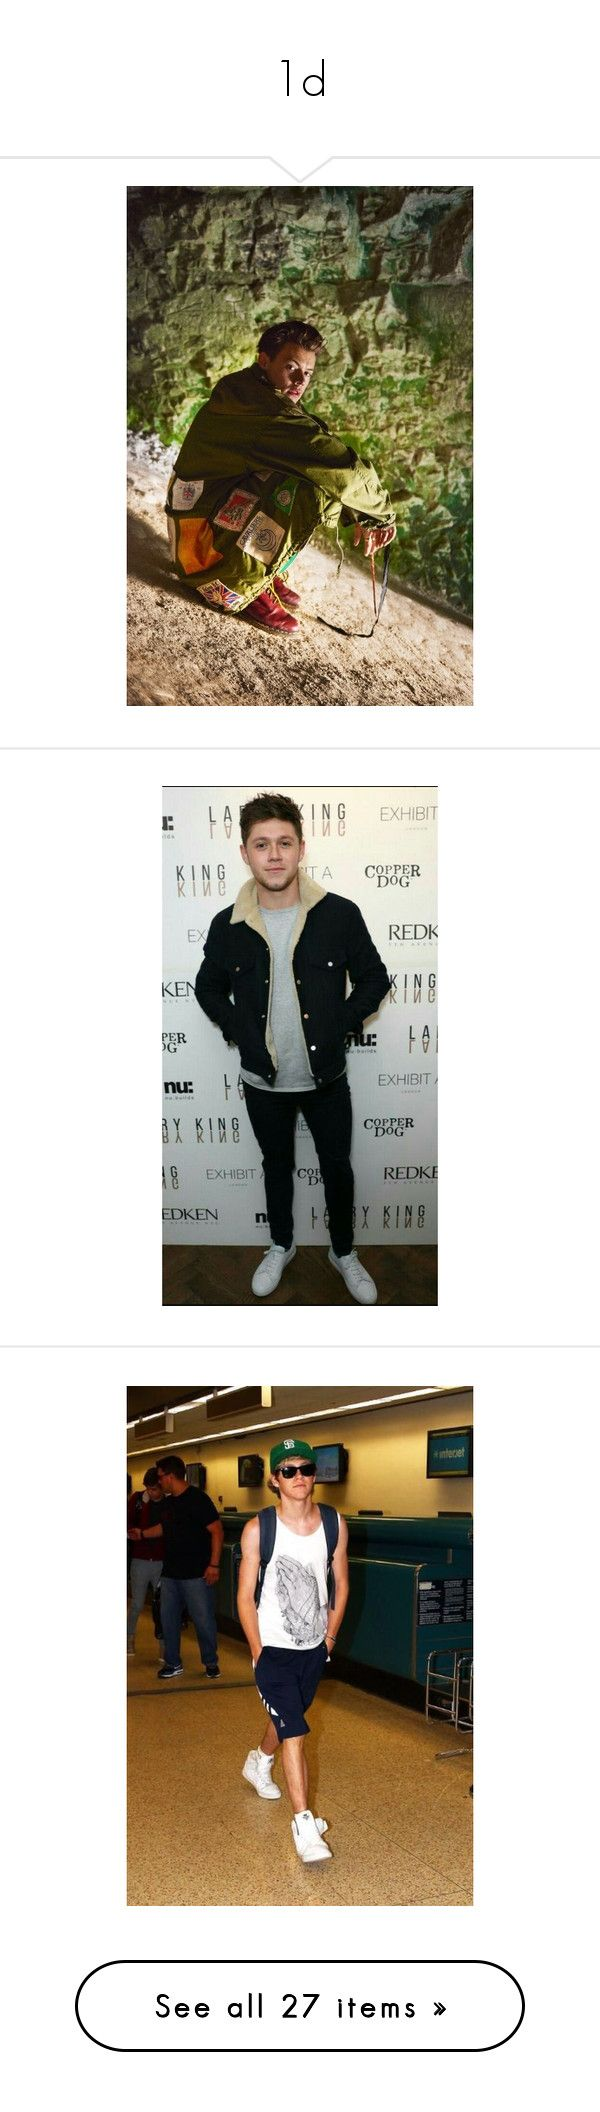 """""""1d"""" by geld-1 ❤ liked on Polyvore featuring one direction, eleanor calder, louis, louis tomlinson, eleanor, zayn, zayn malik, 1d, 1d and lm and liam payne"""